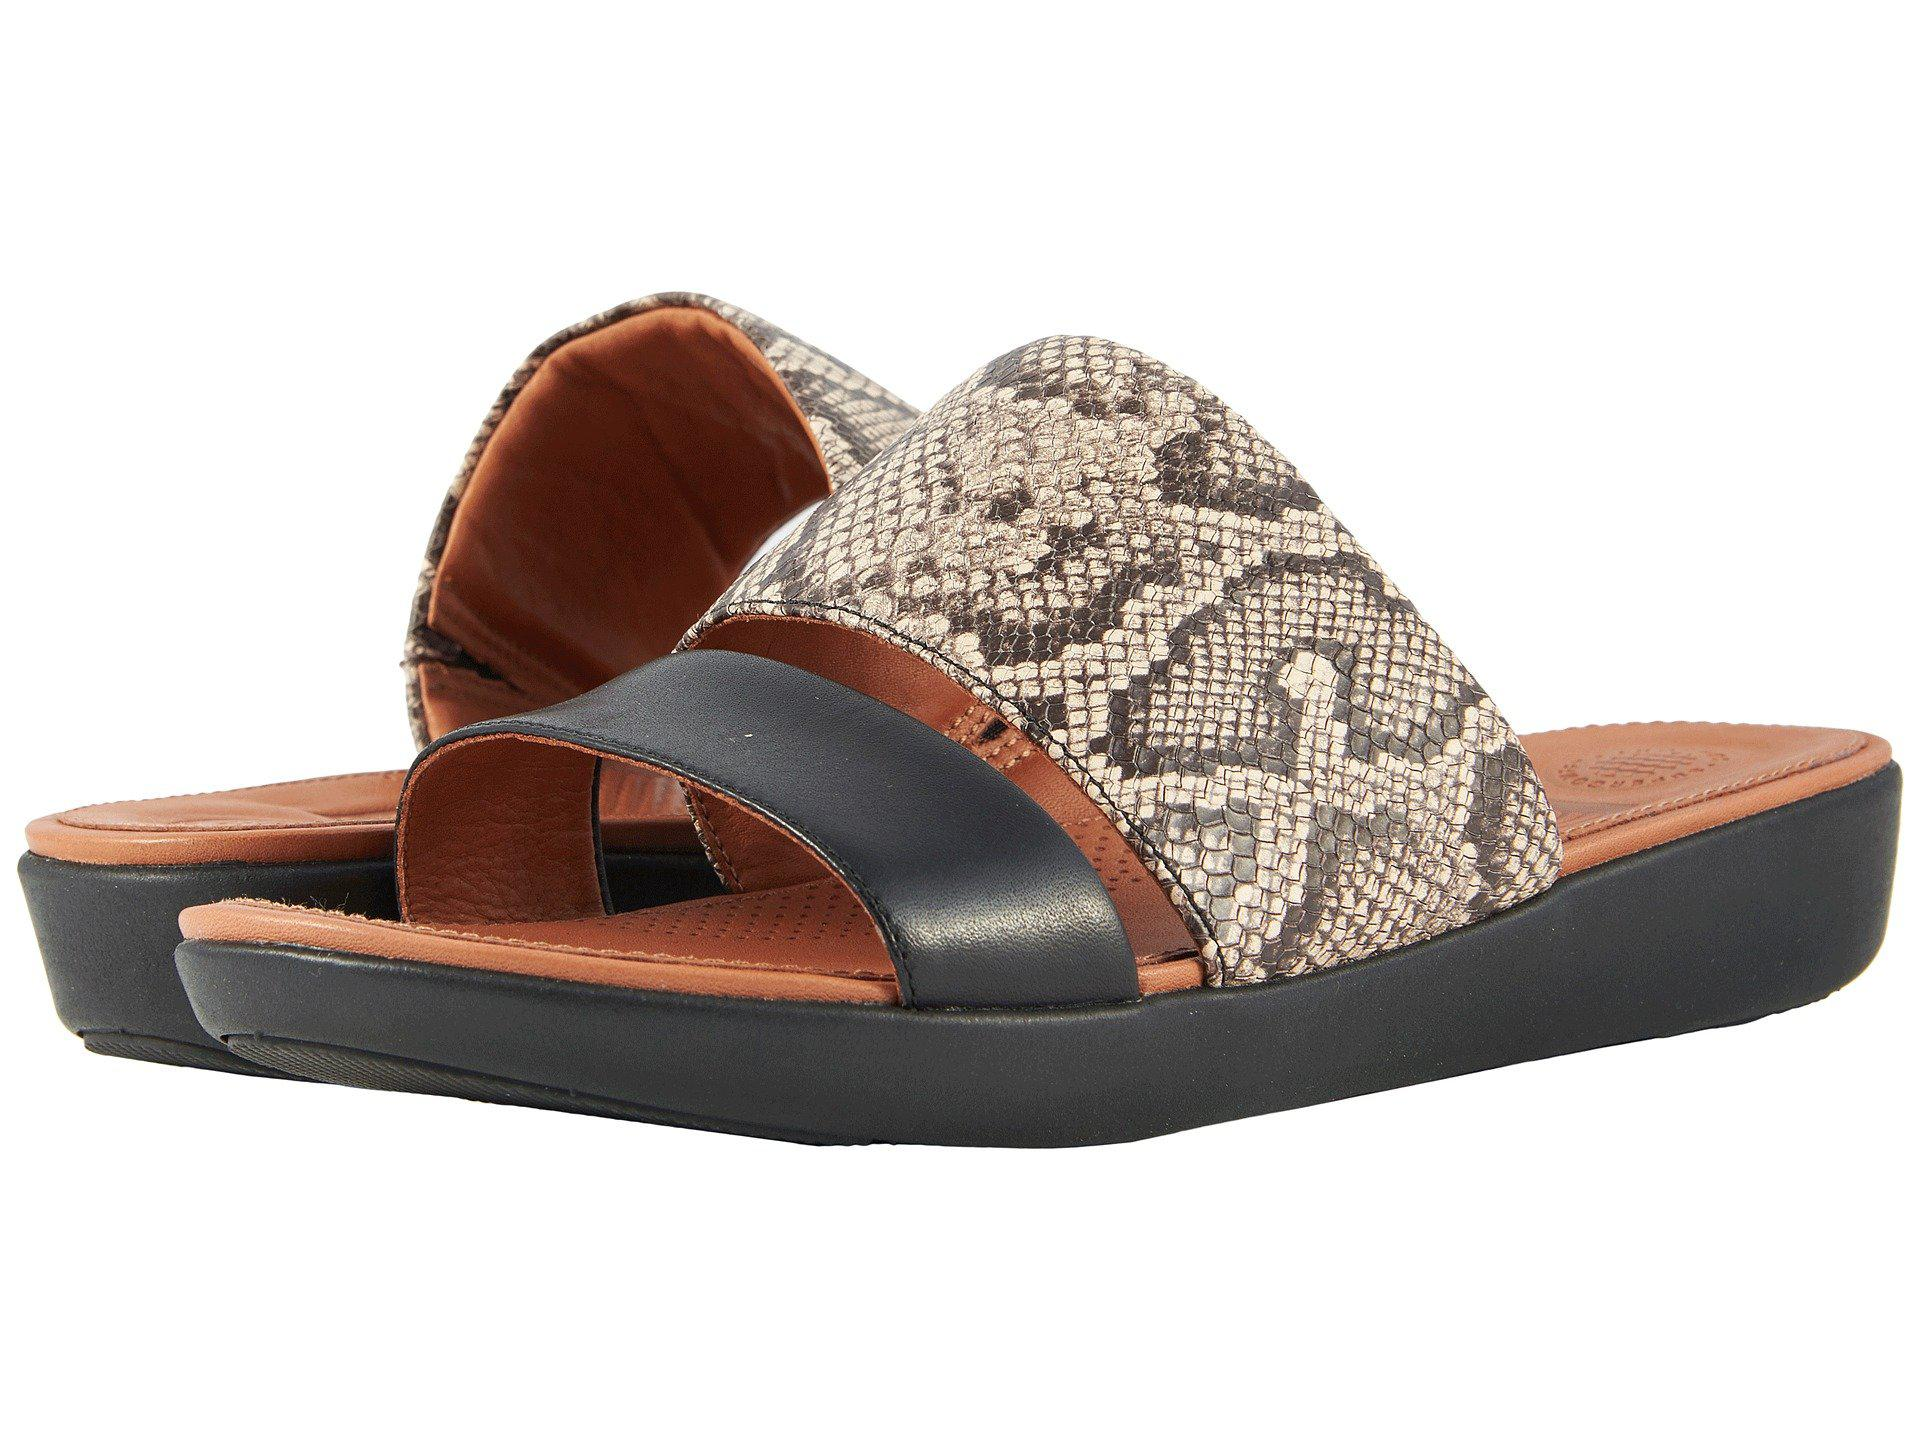 4eb1d5f01619 Lyst - Fitflop Delta Slide Sandals - Save 42%